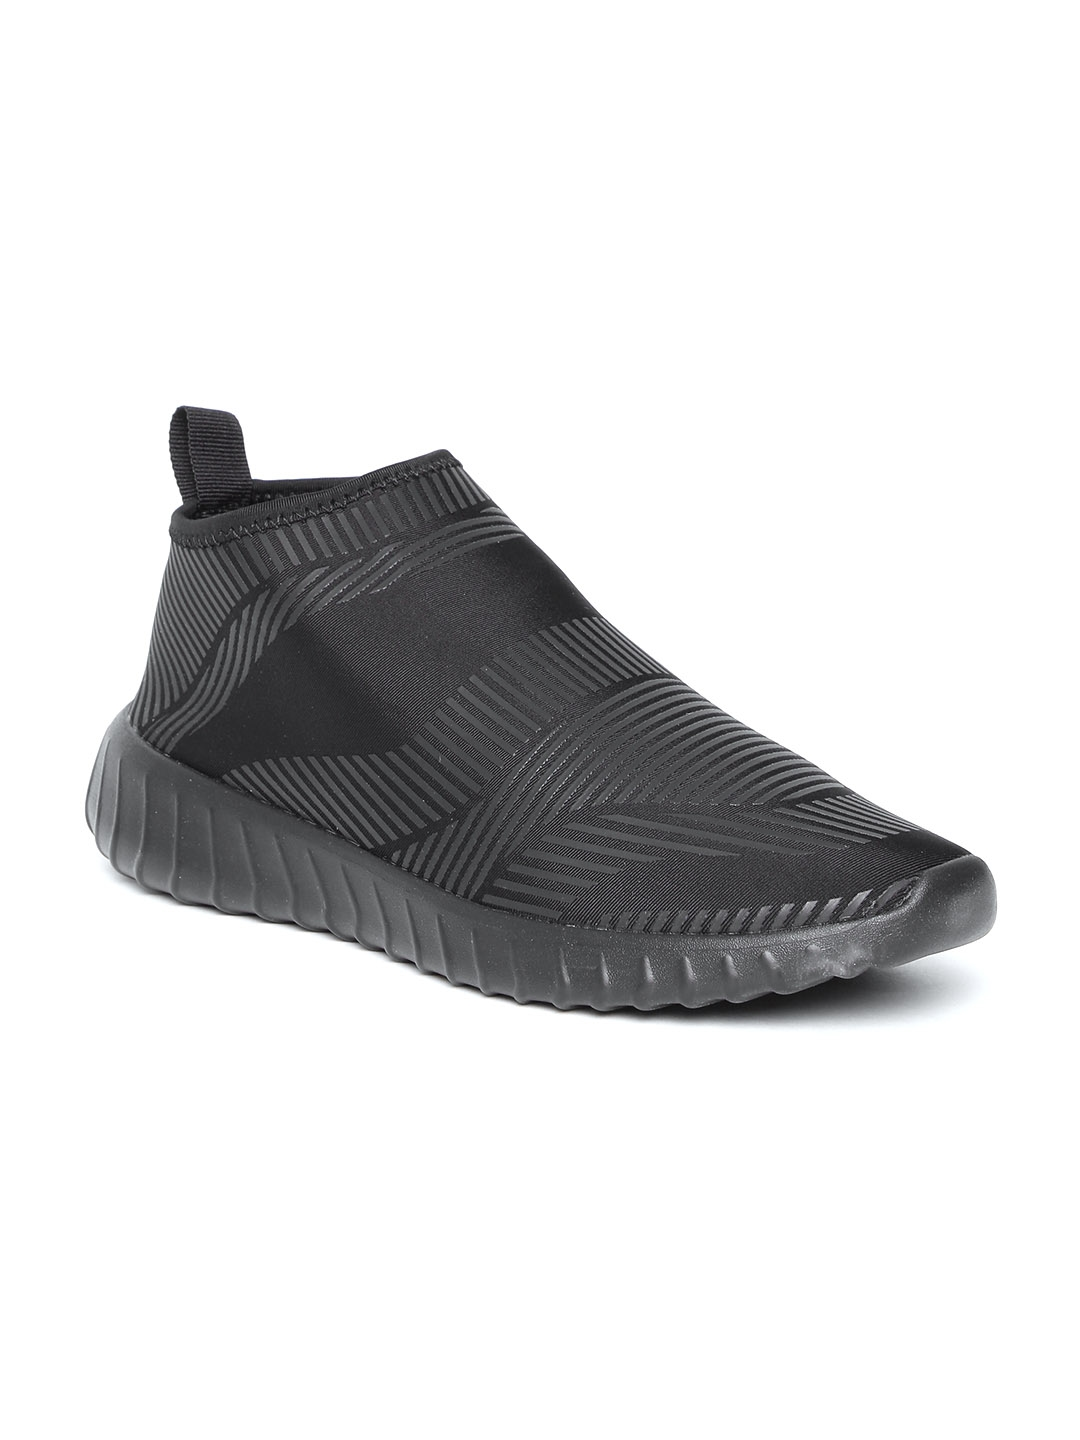 Buy Lotto Men Black Self Striped Slip On Sneakers - Casual Shoes for ... c1a11140b54